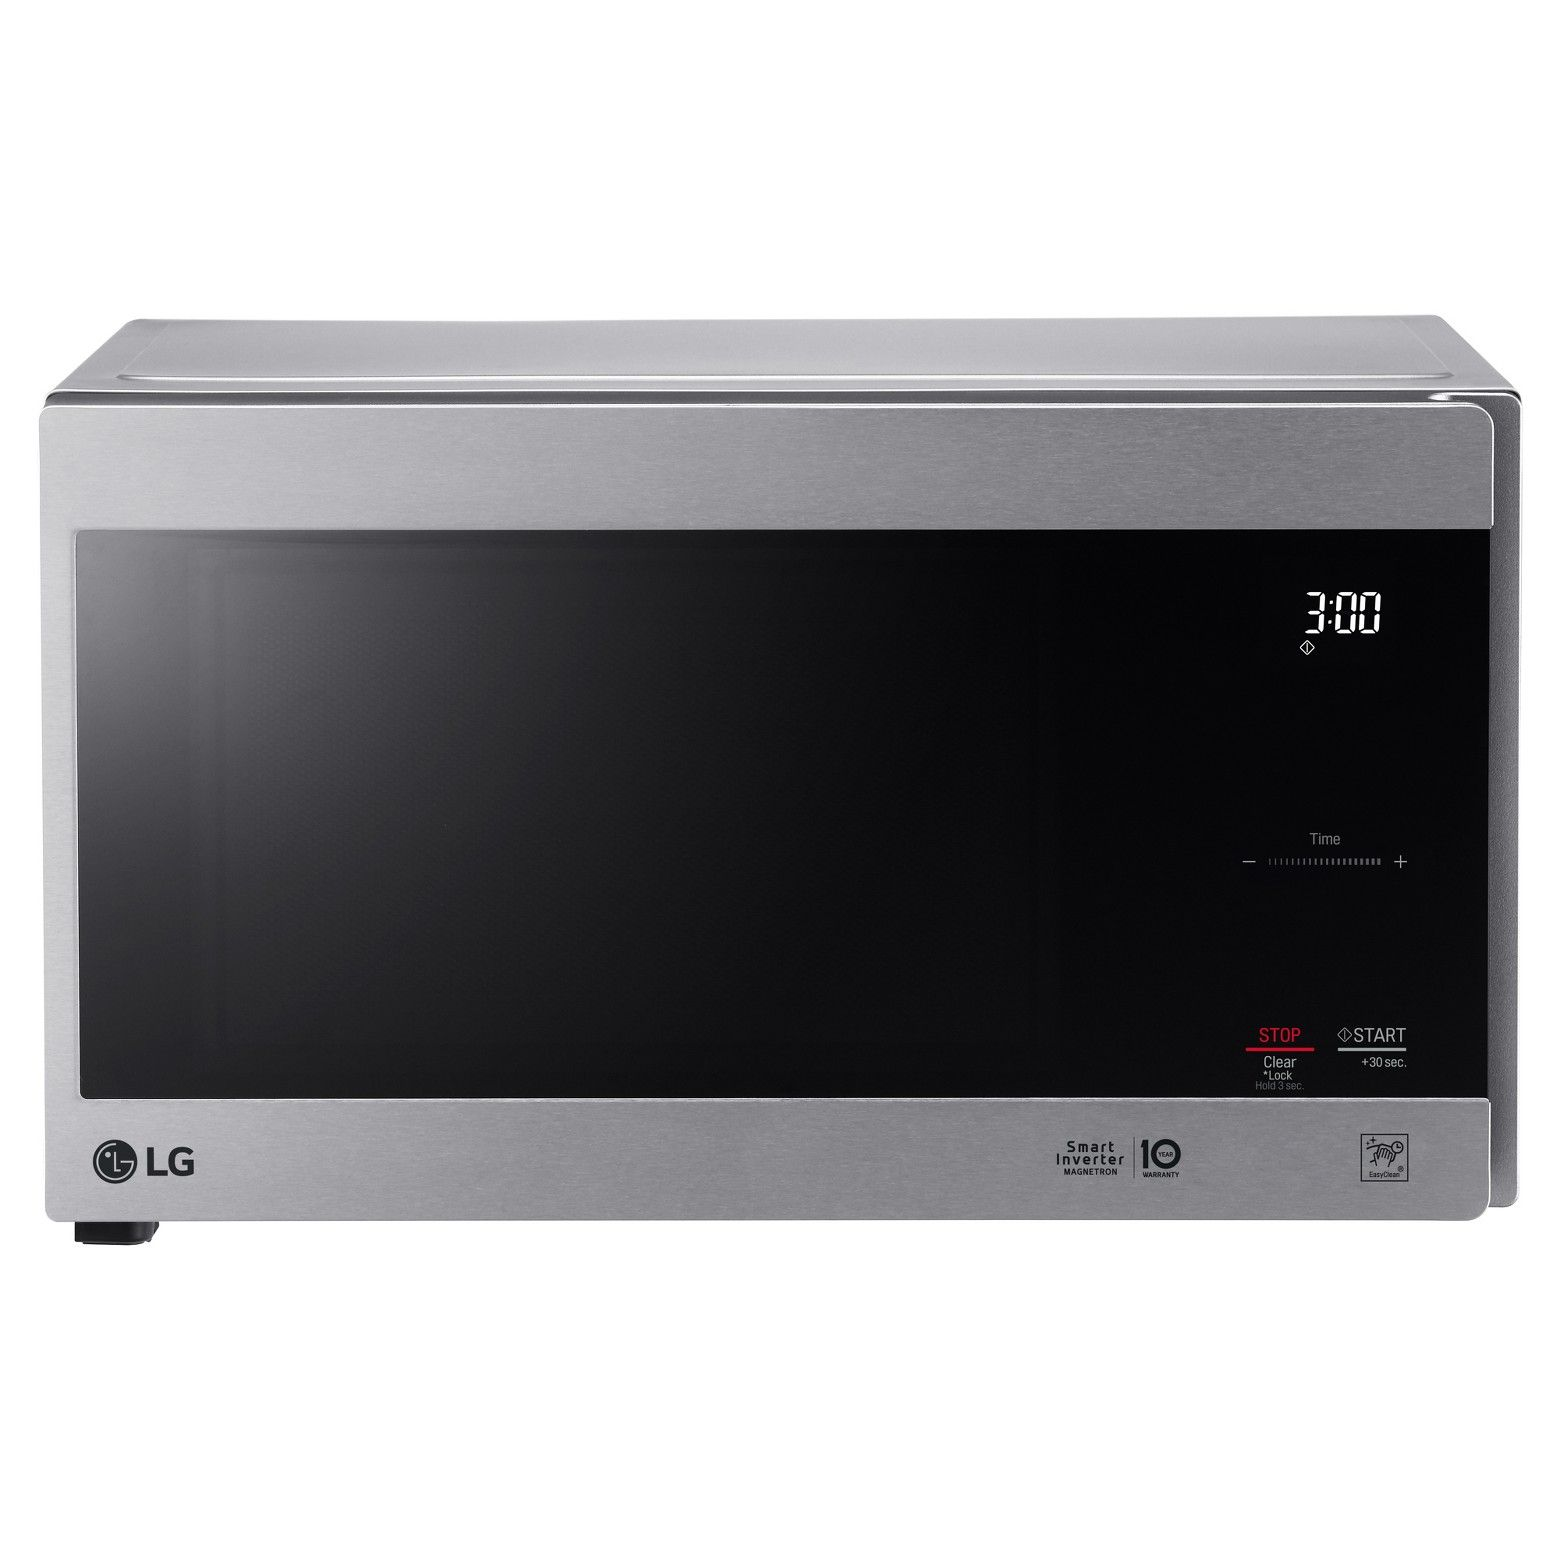 Lg 0 9 Cu Ft Countertop Microwave Smart Inverter Stainless Lmc0975st With Images Countertop Microwave Inverter Microwave Countertops